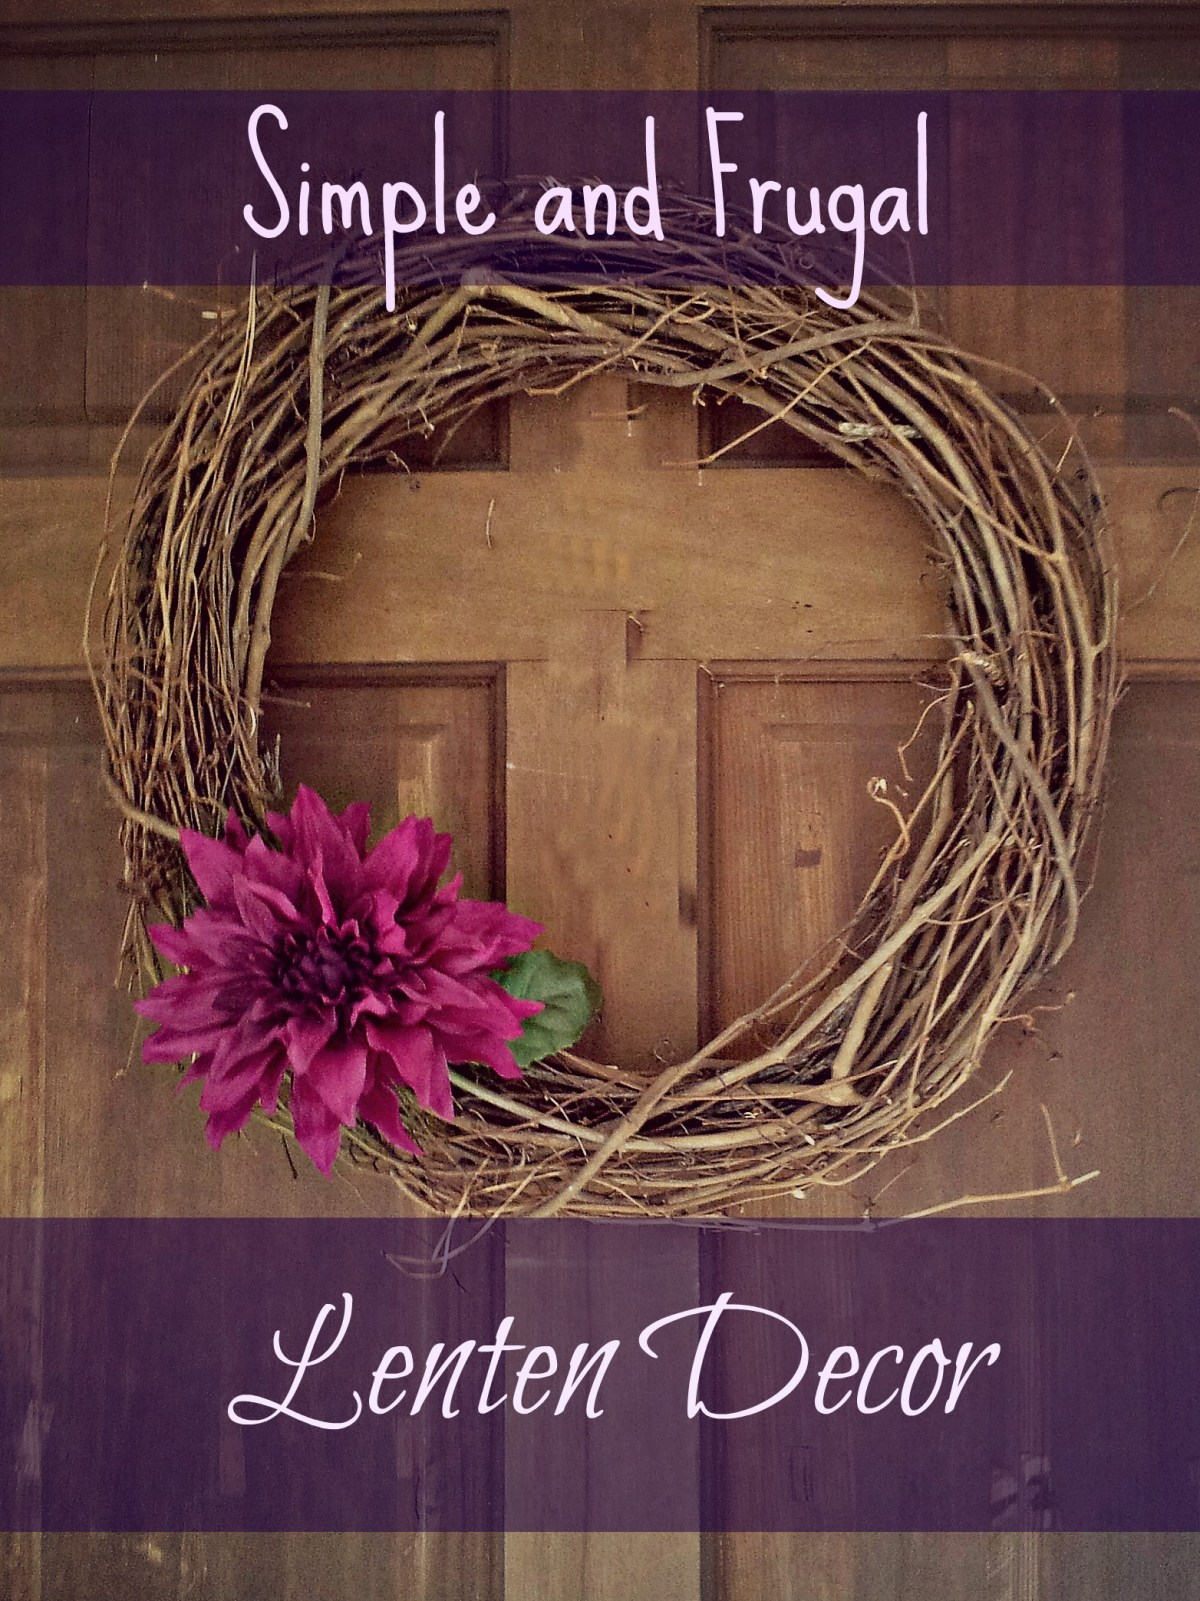 Super quick and easy Lenten decor